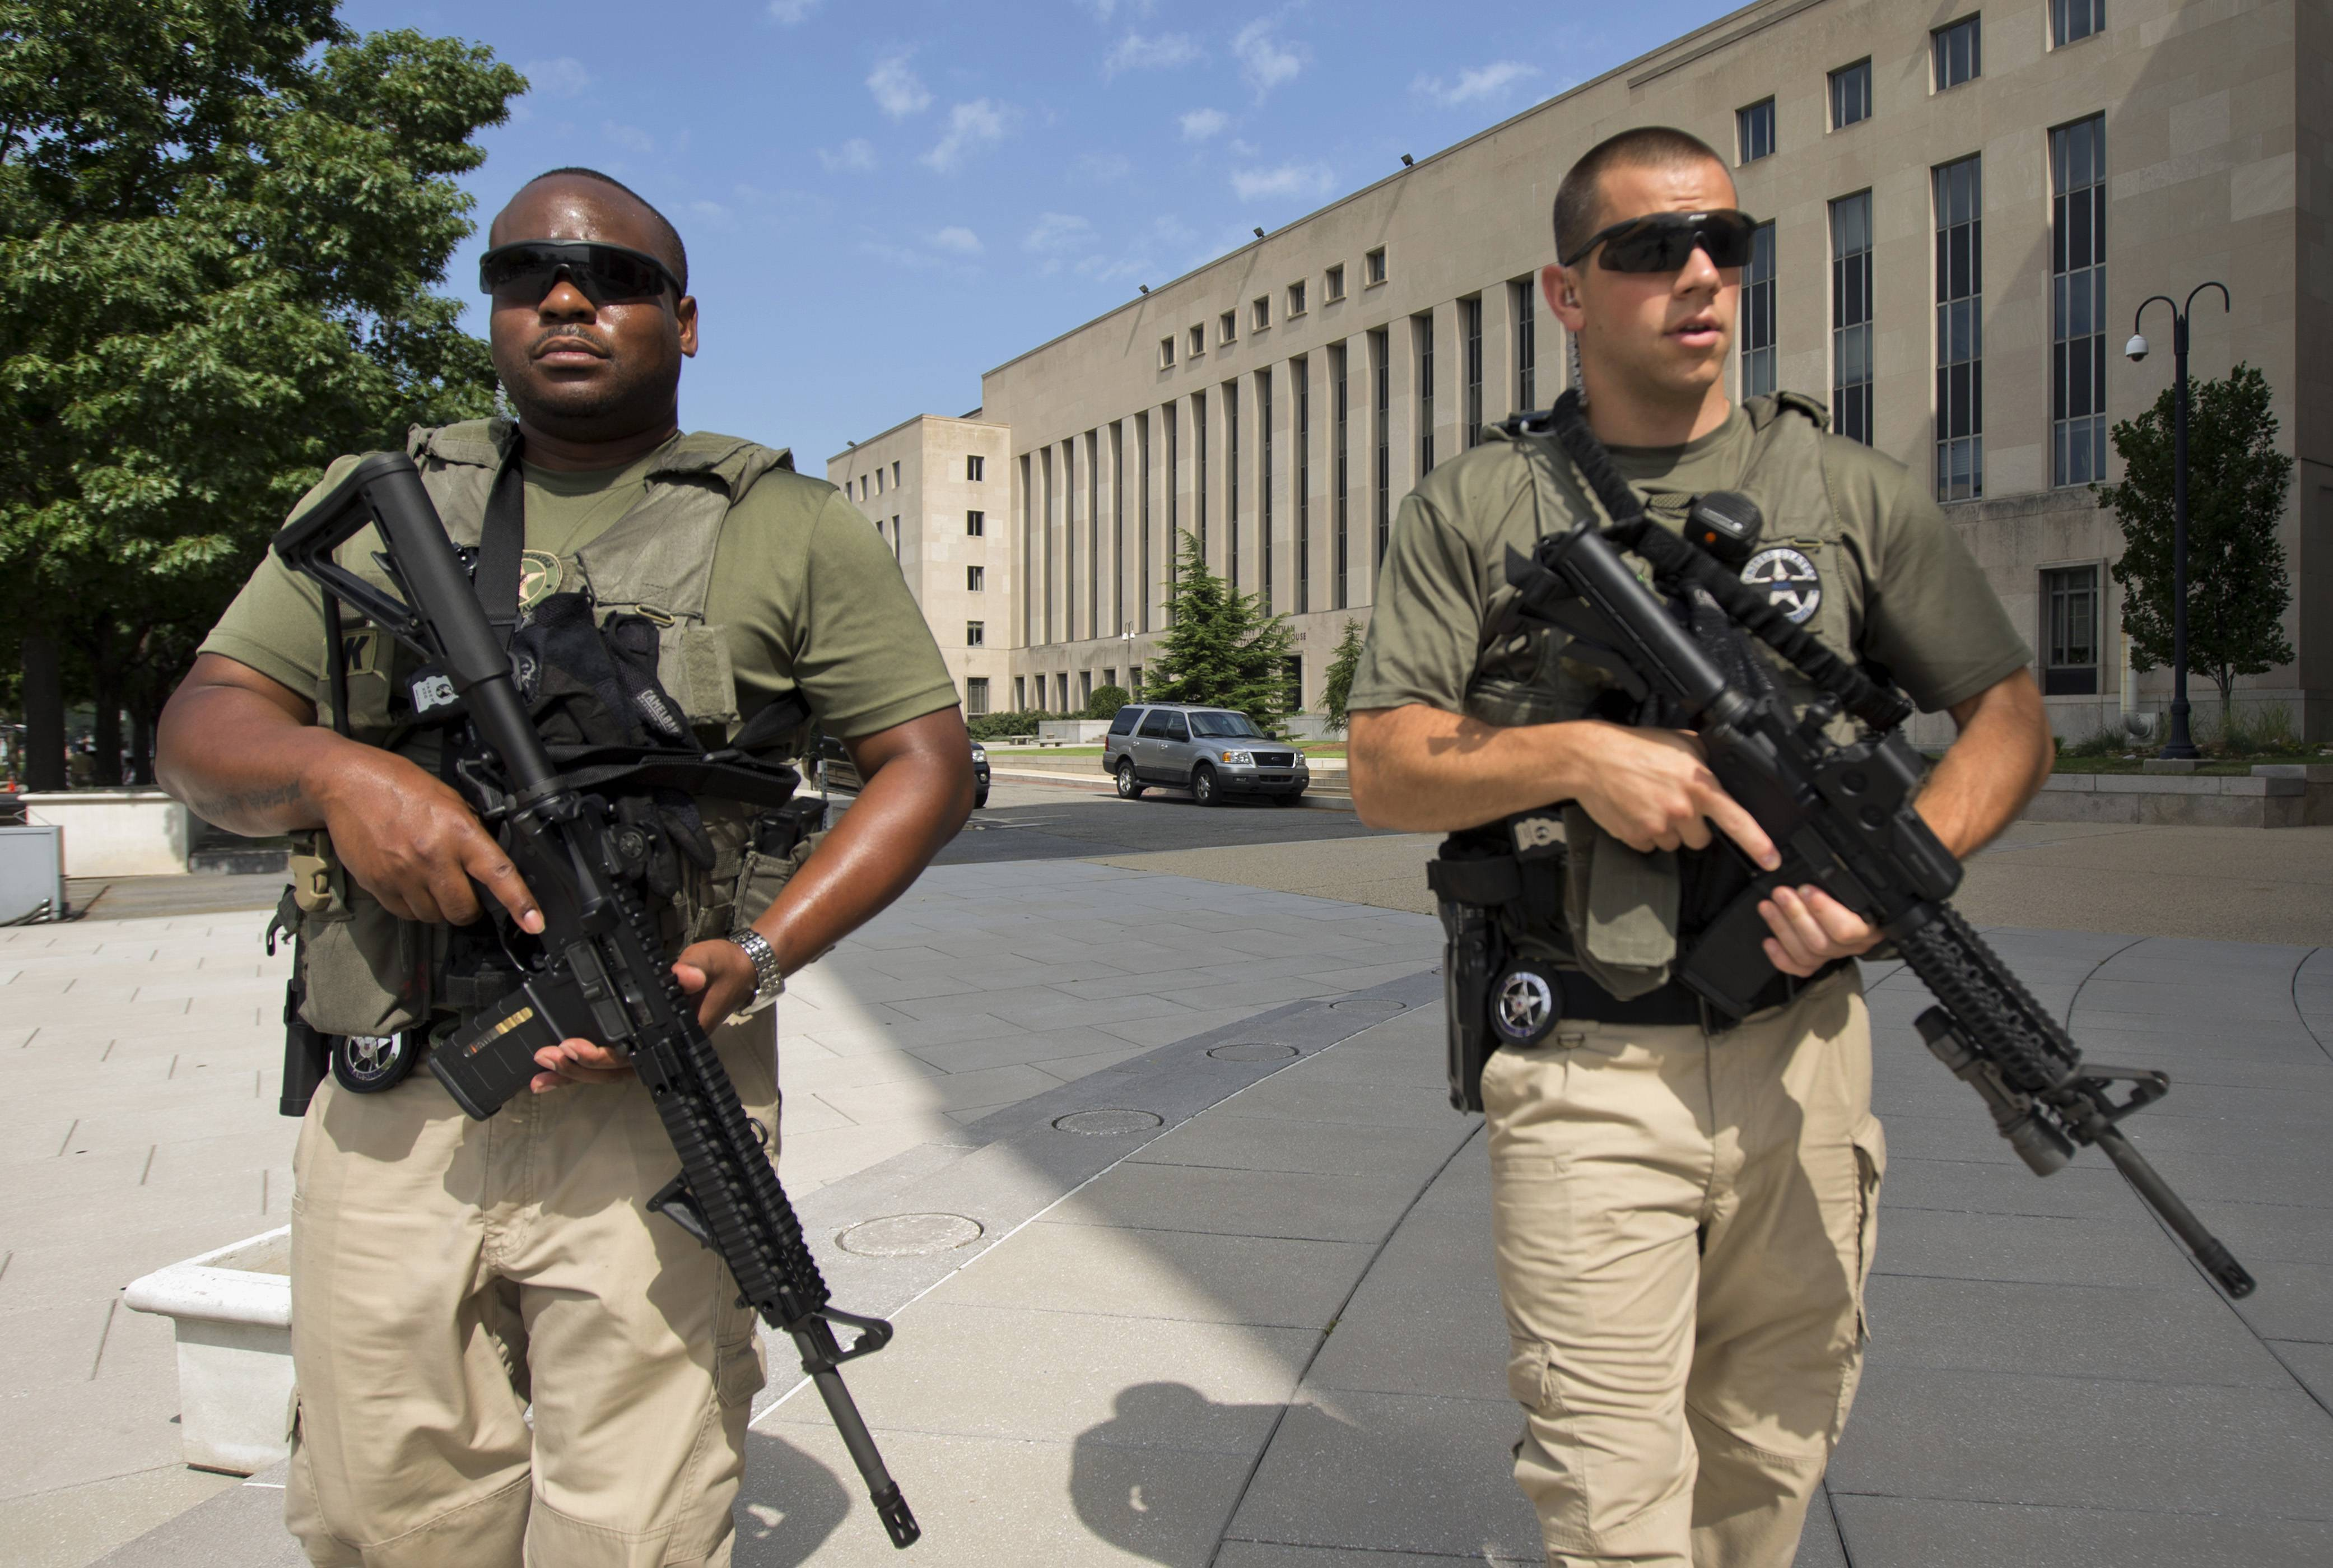 U.S. Marshals patrol the area outside federal court Wednesday in Washington, where Libyan militant Ahmed Abu Khattala, charged in the deadly attack at the U.S. diplomatic outpost in Benghazi, was being held for a detention hearing.